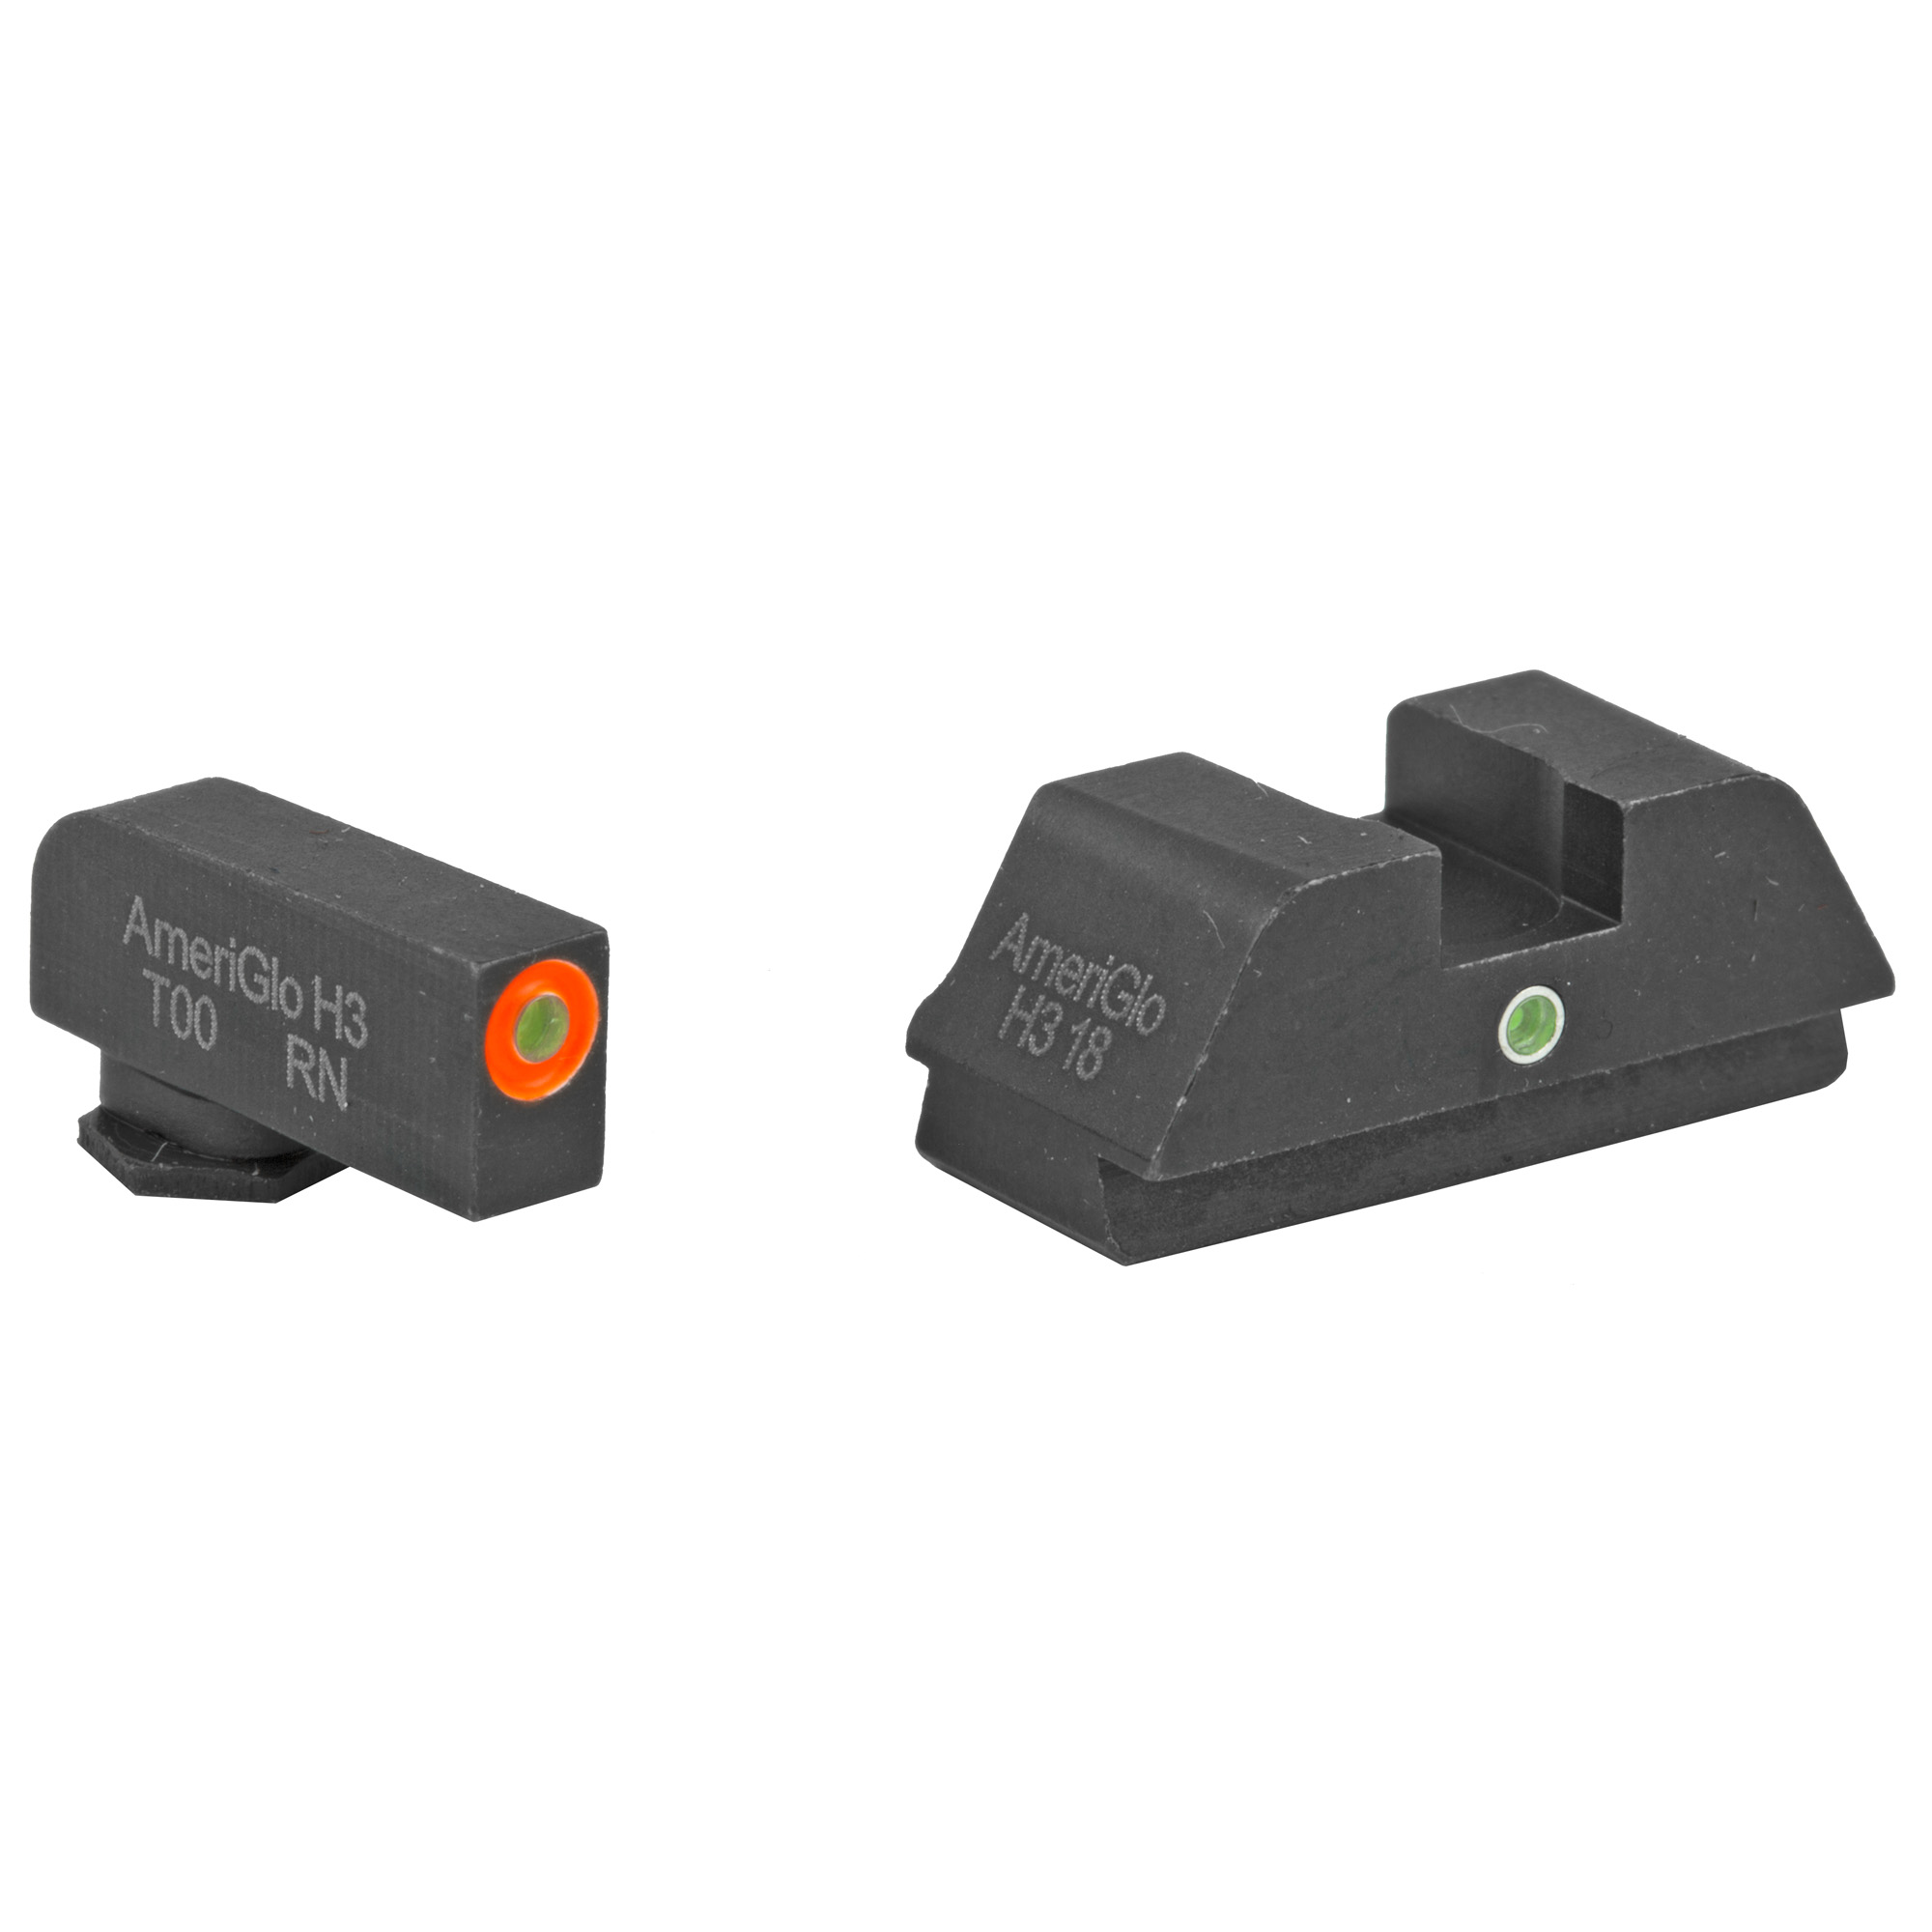 Sight set with green tritium lamp front and one green tritium lamp rear for Glocks. Designed for simple front sight acquisition while retaining rear illumination.